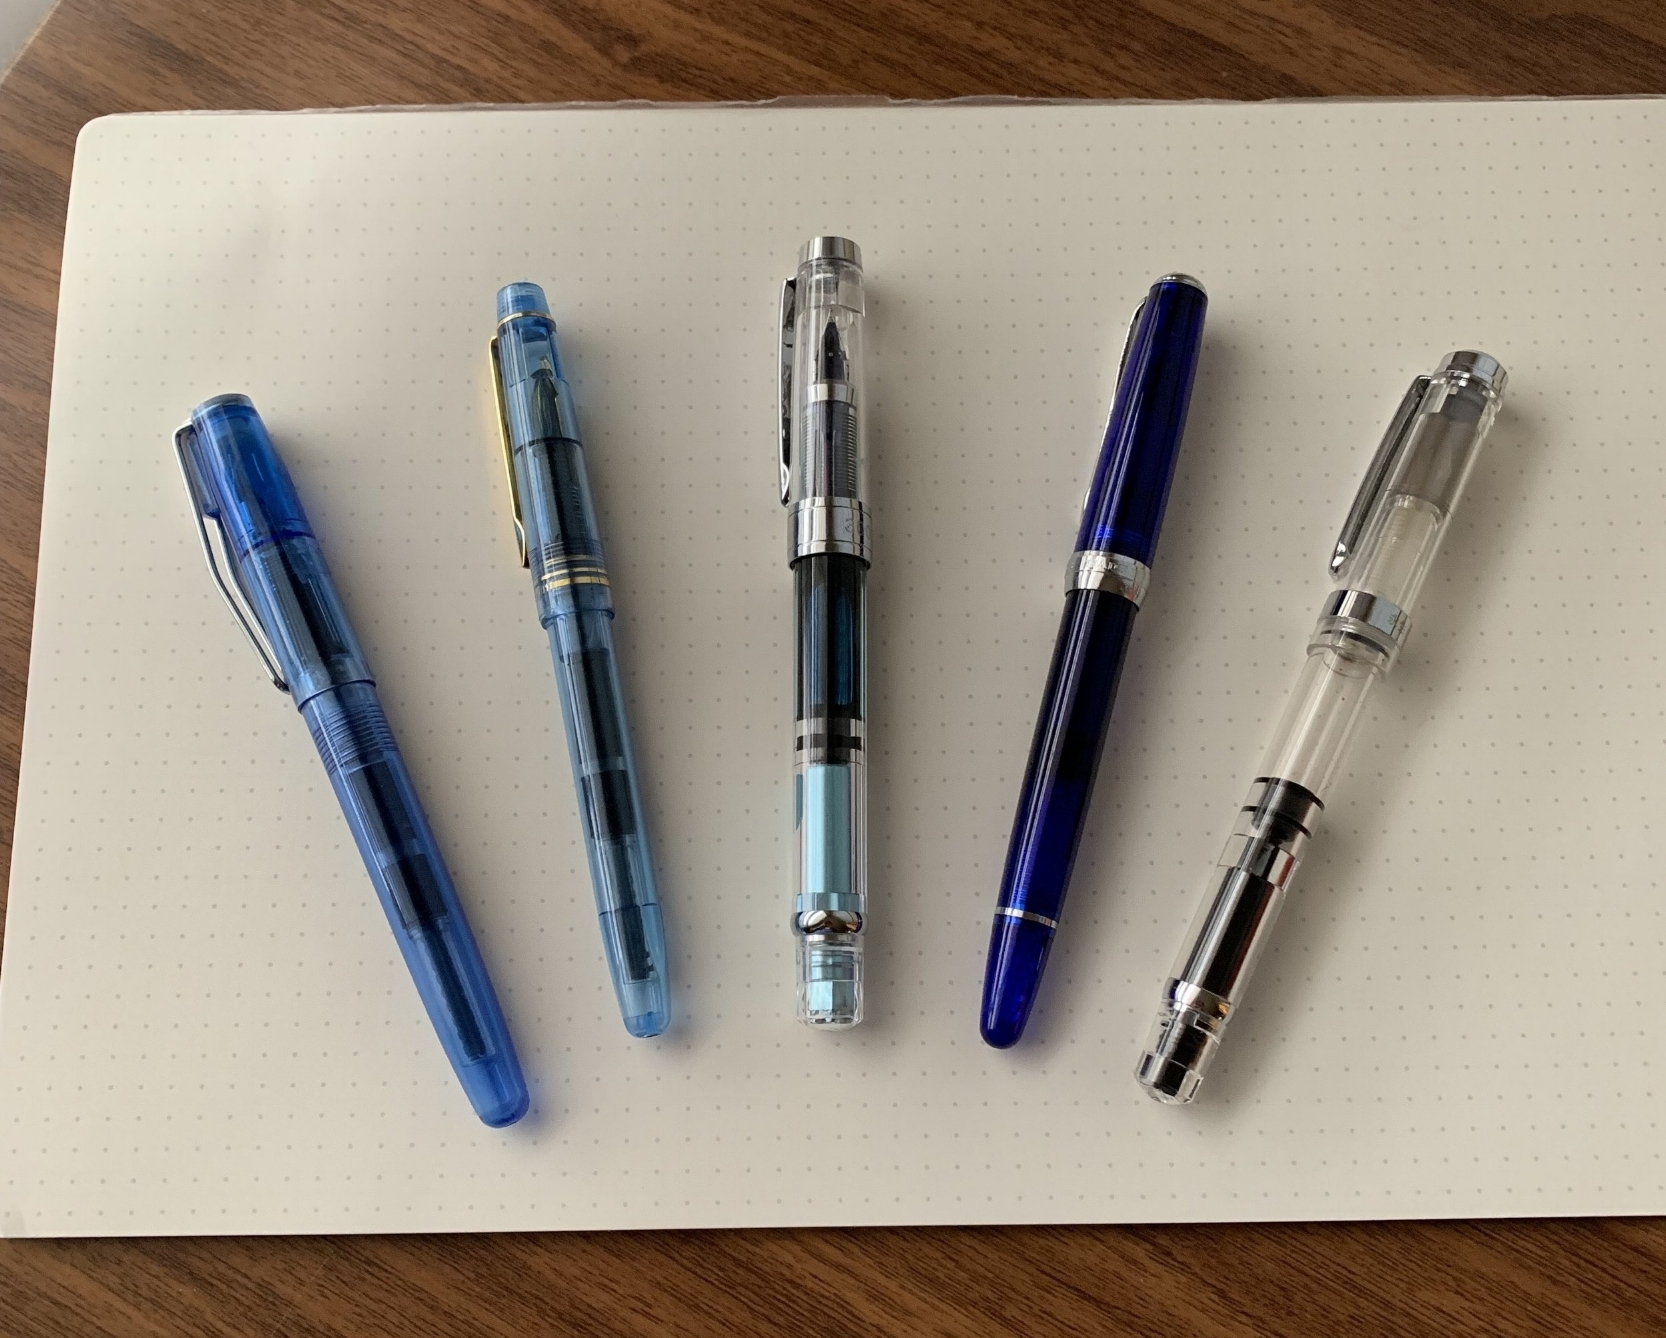 From left: Wing Sung 3010, Wing Sung 3001, Wing Sung 3008, Wing Sung 618, and Wing Sung 698.